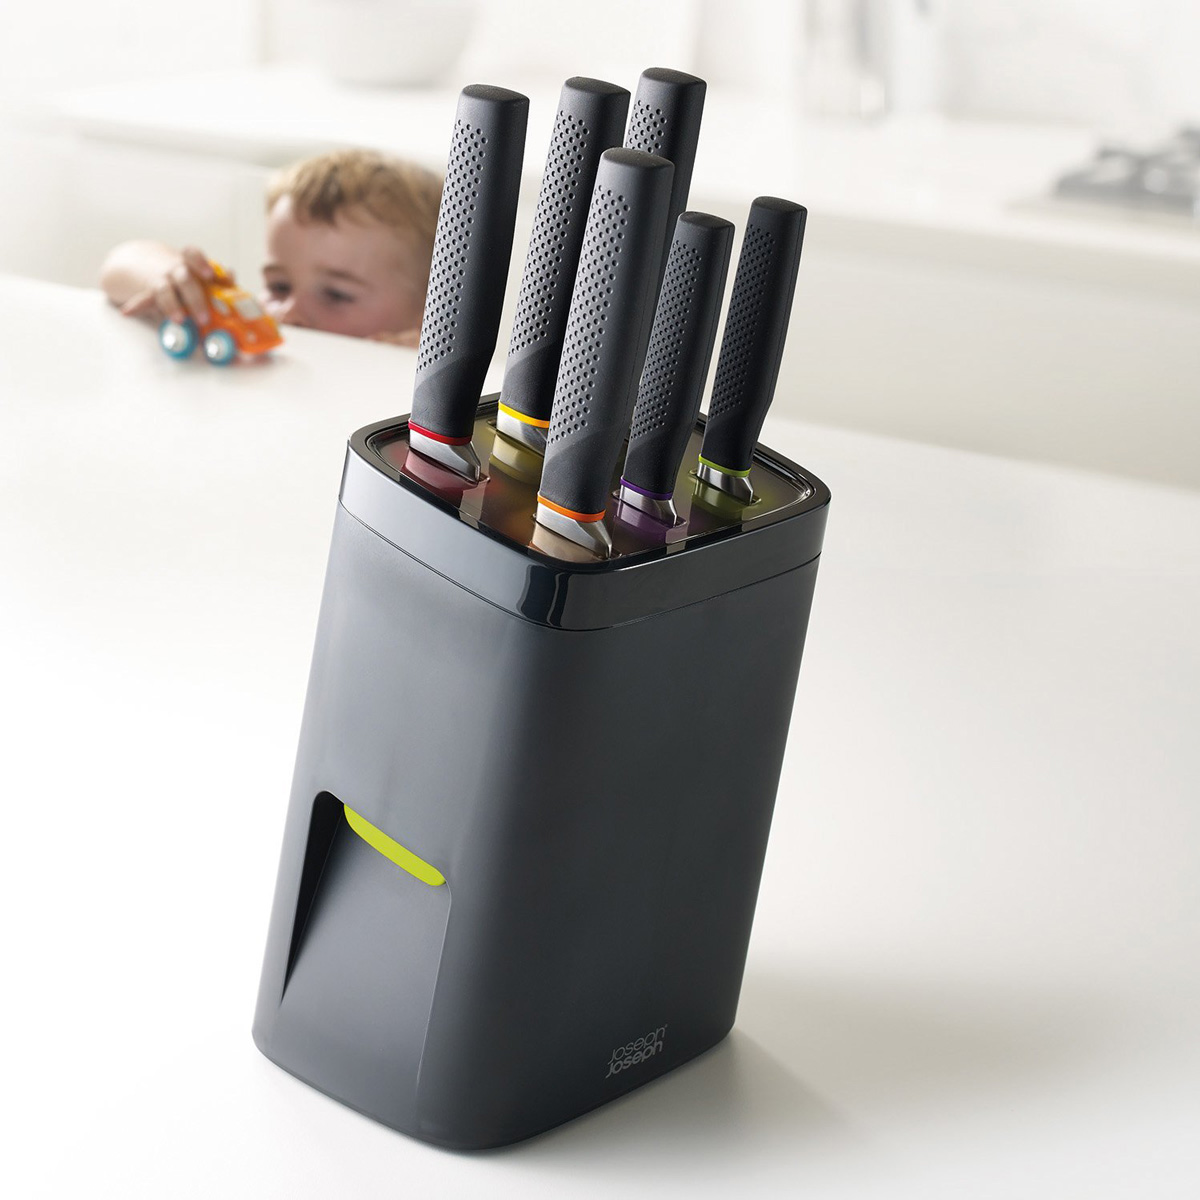 Childproof Self Locking Universal Knife Block The Green Head